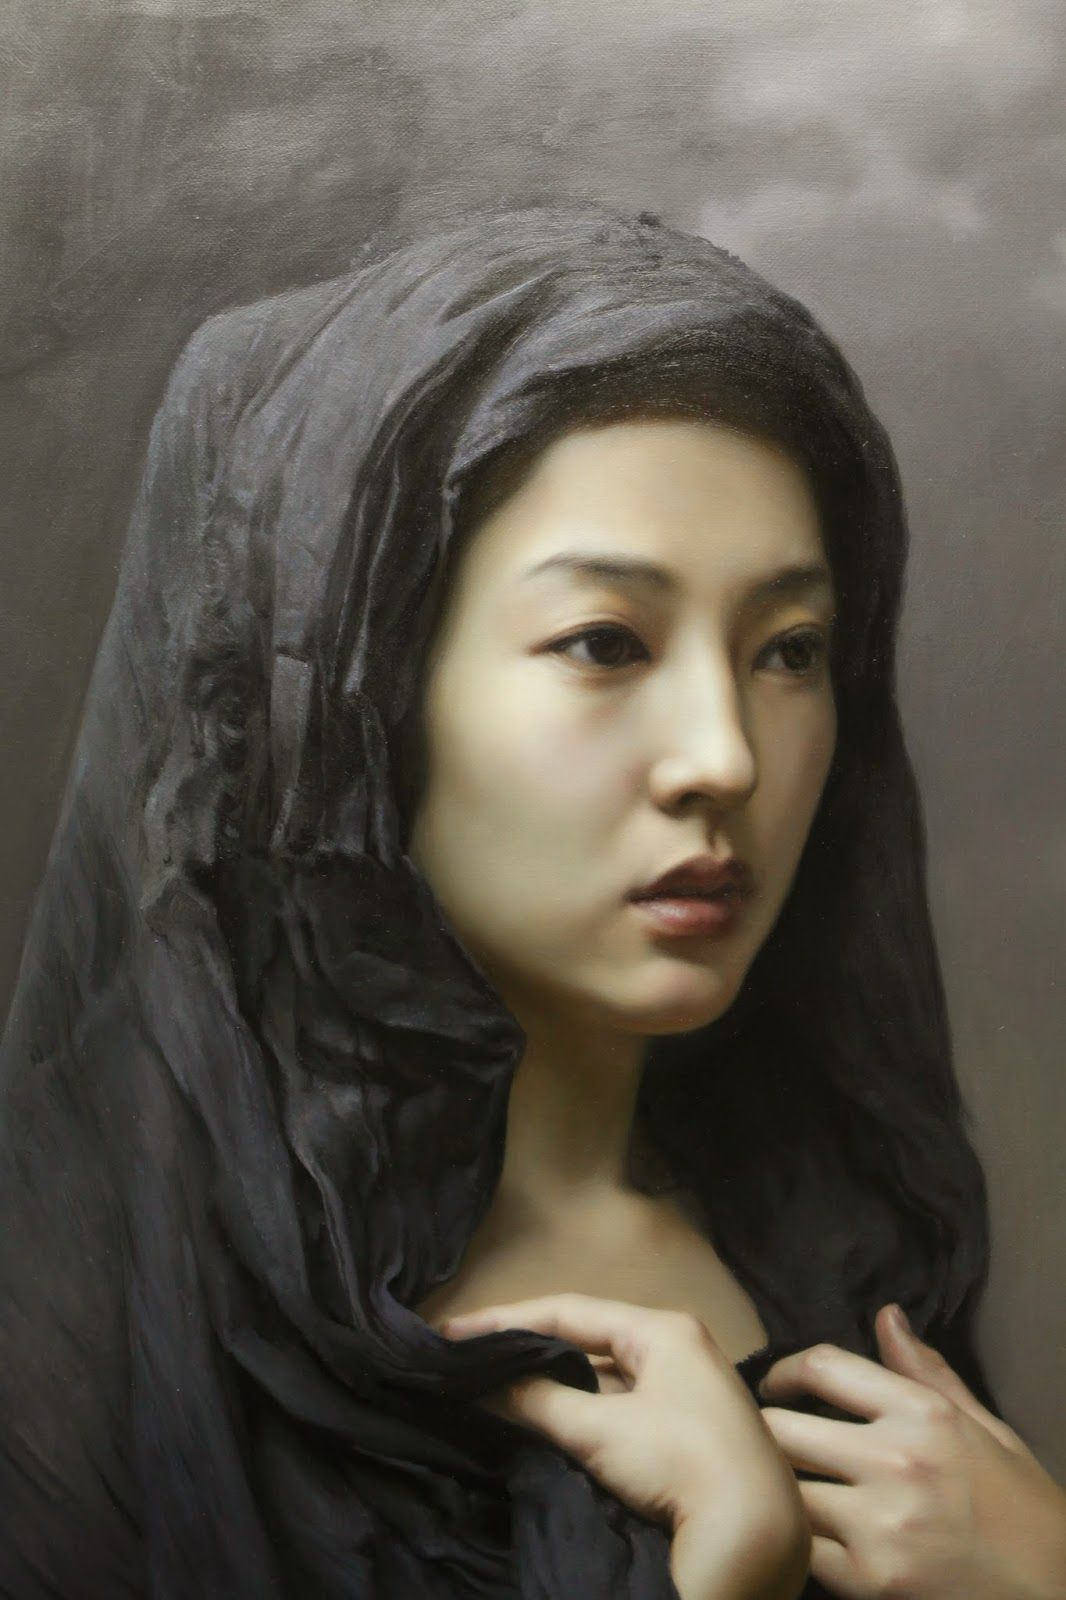 Asian portrait woman